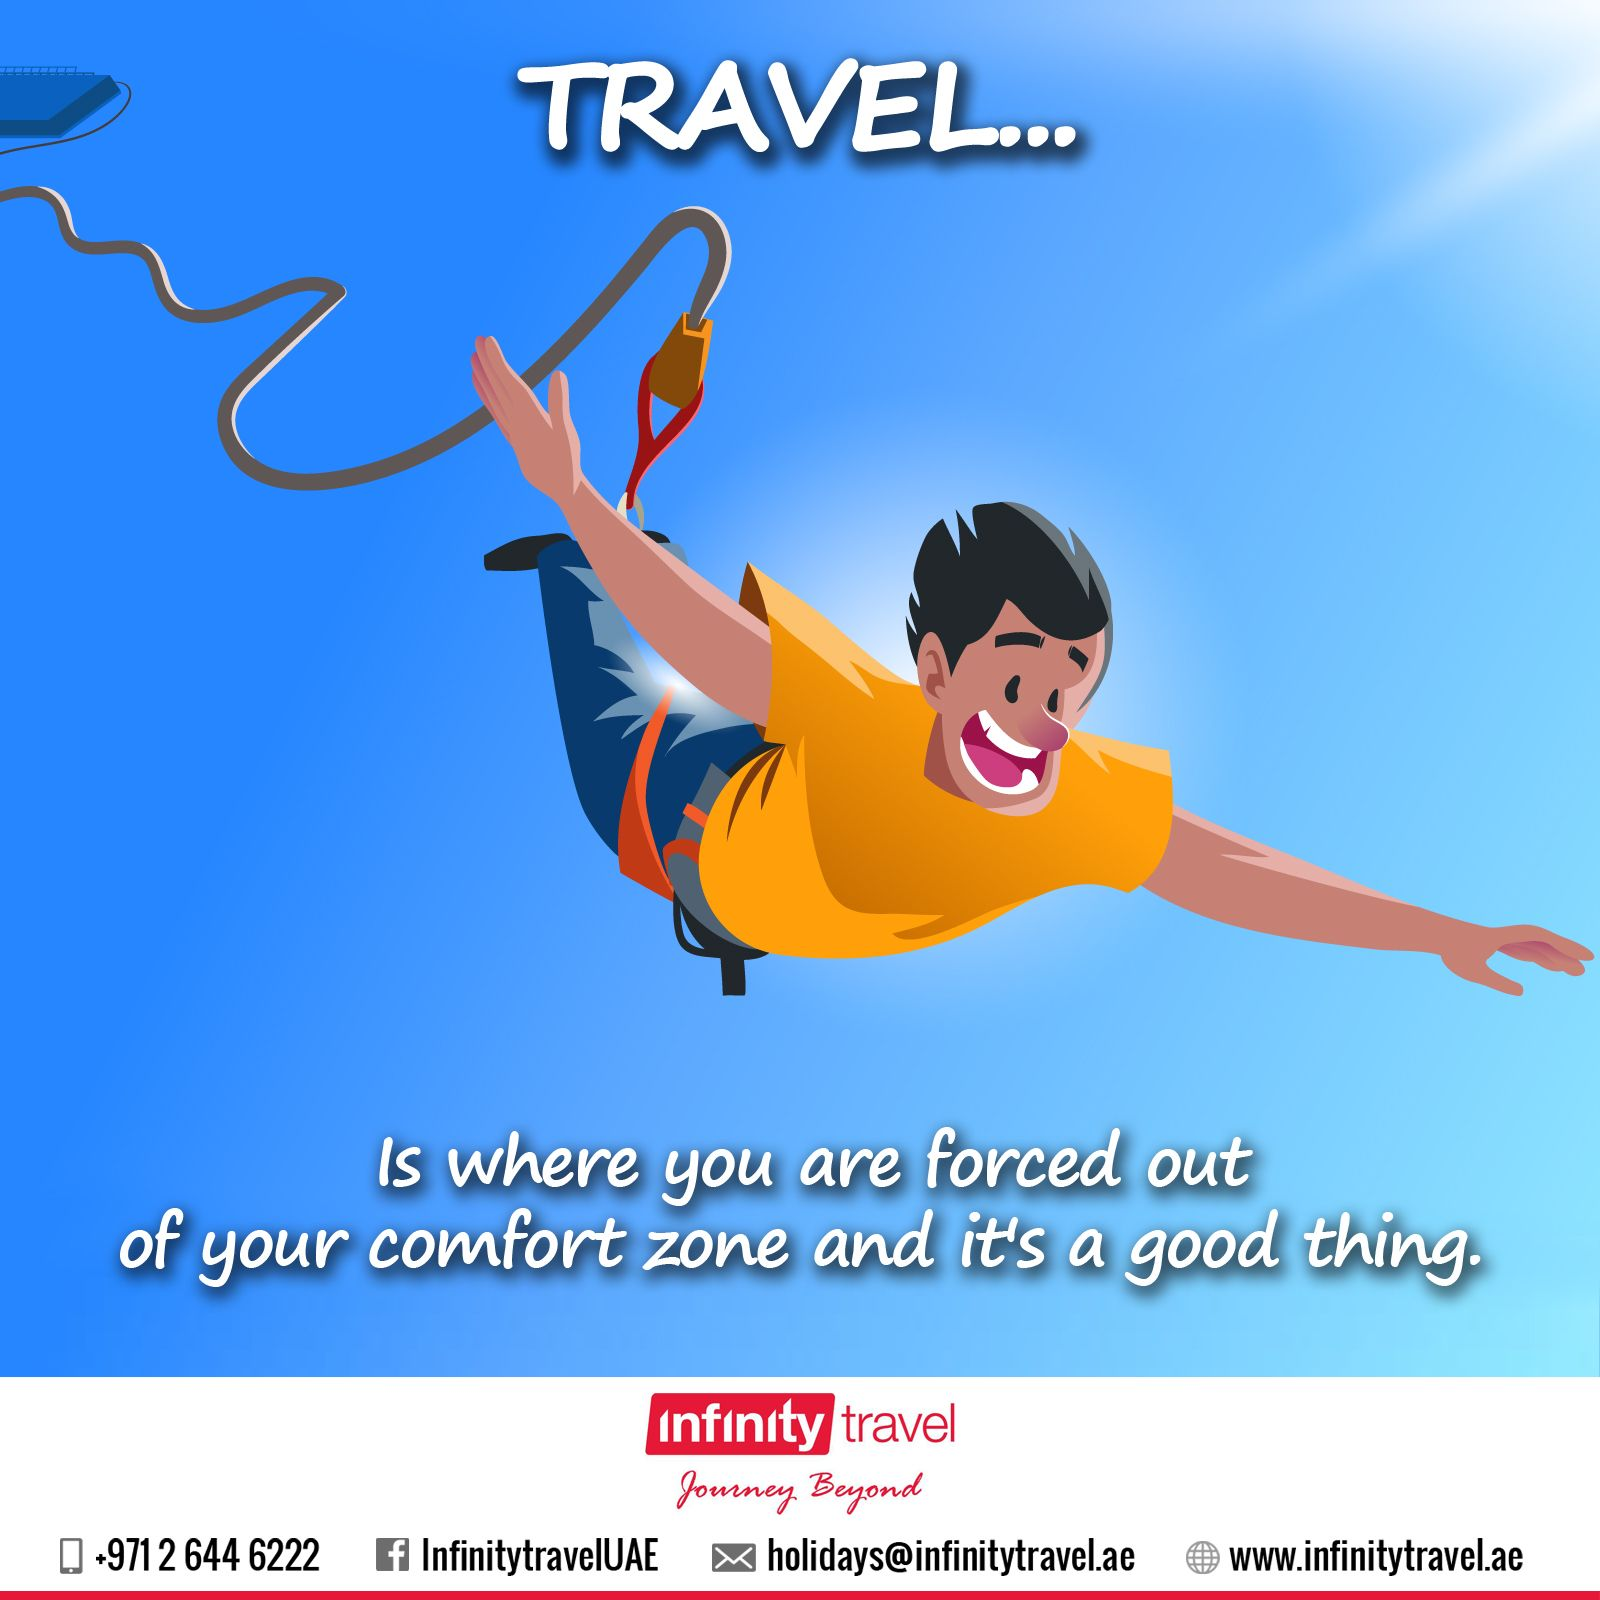 Best travel agent Abu Dhabi Infinity travels is one of the most